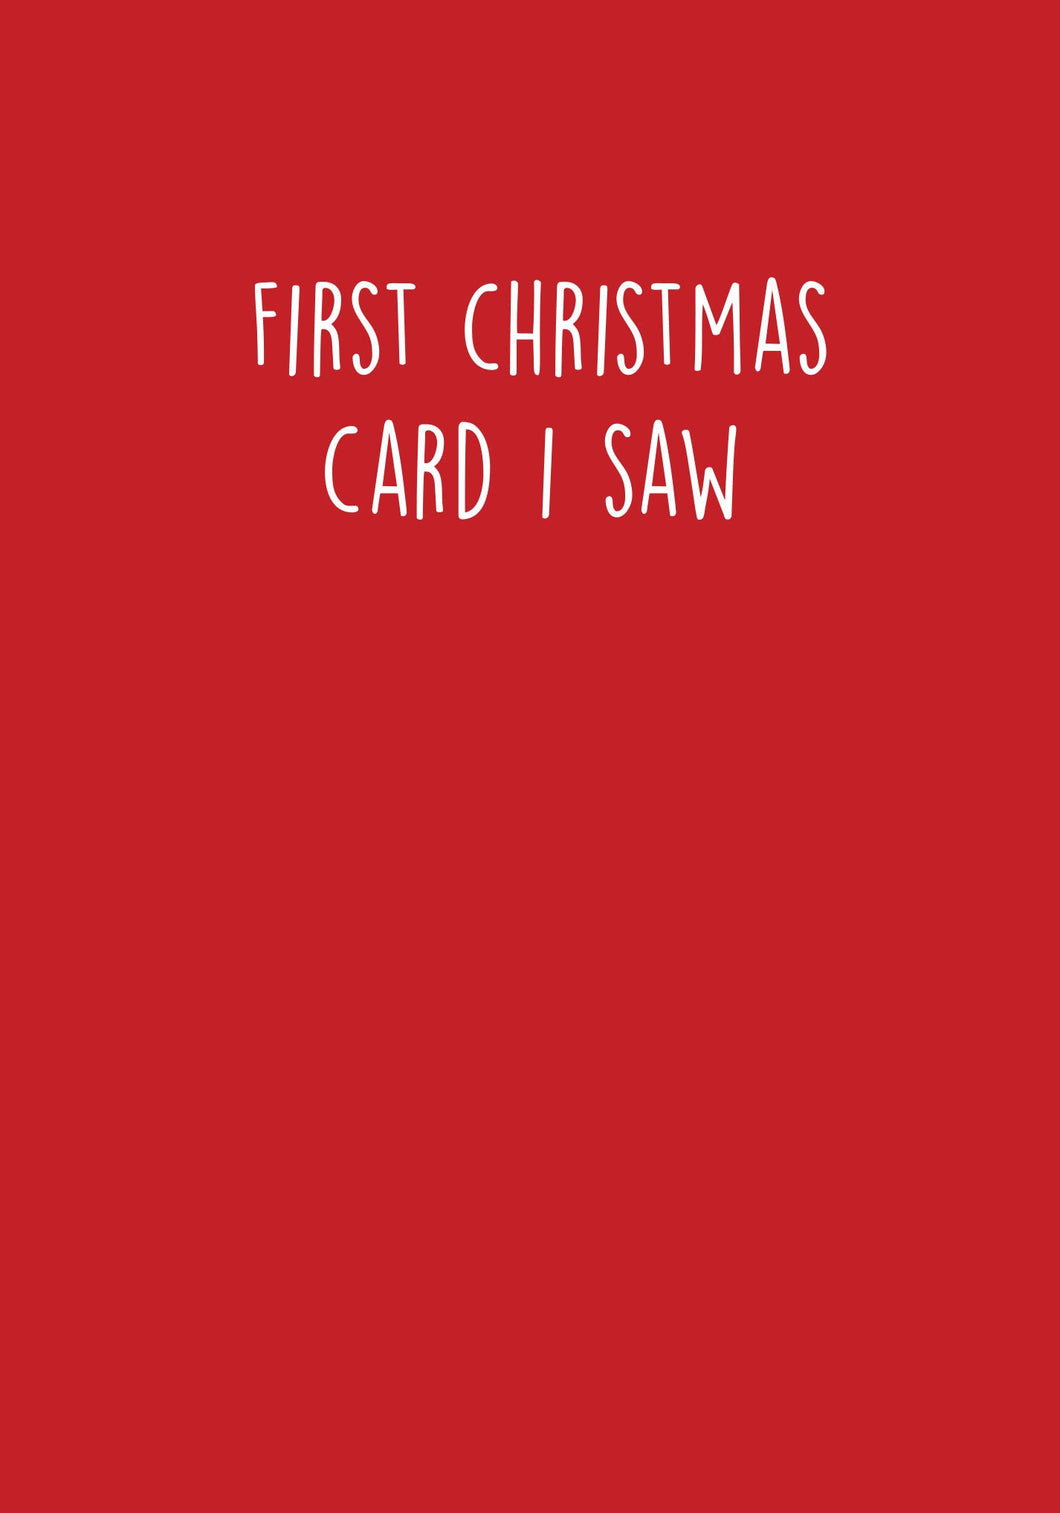 First Christmas card I saw